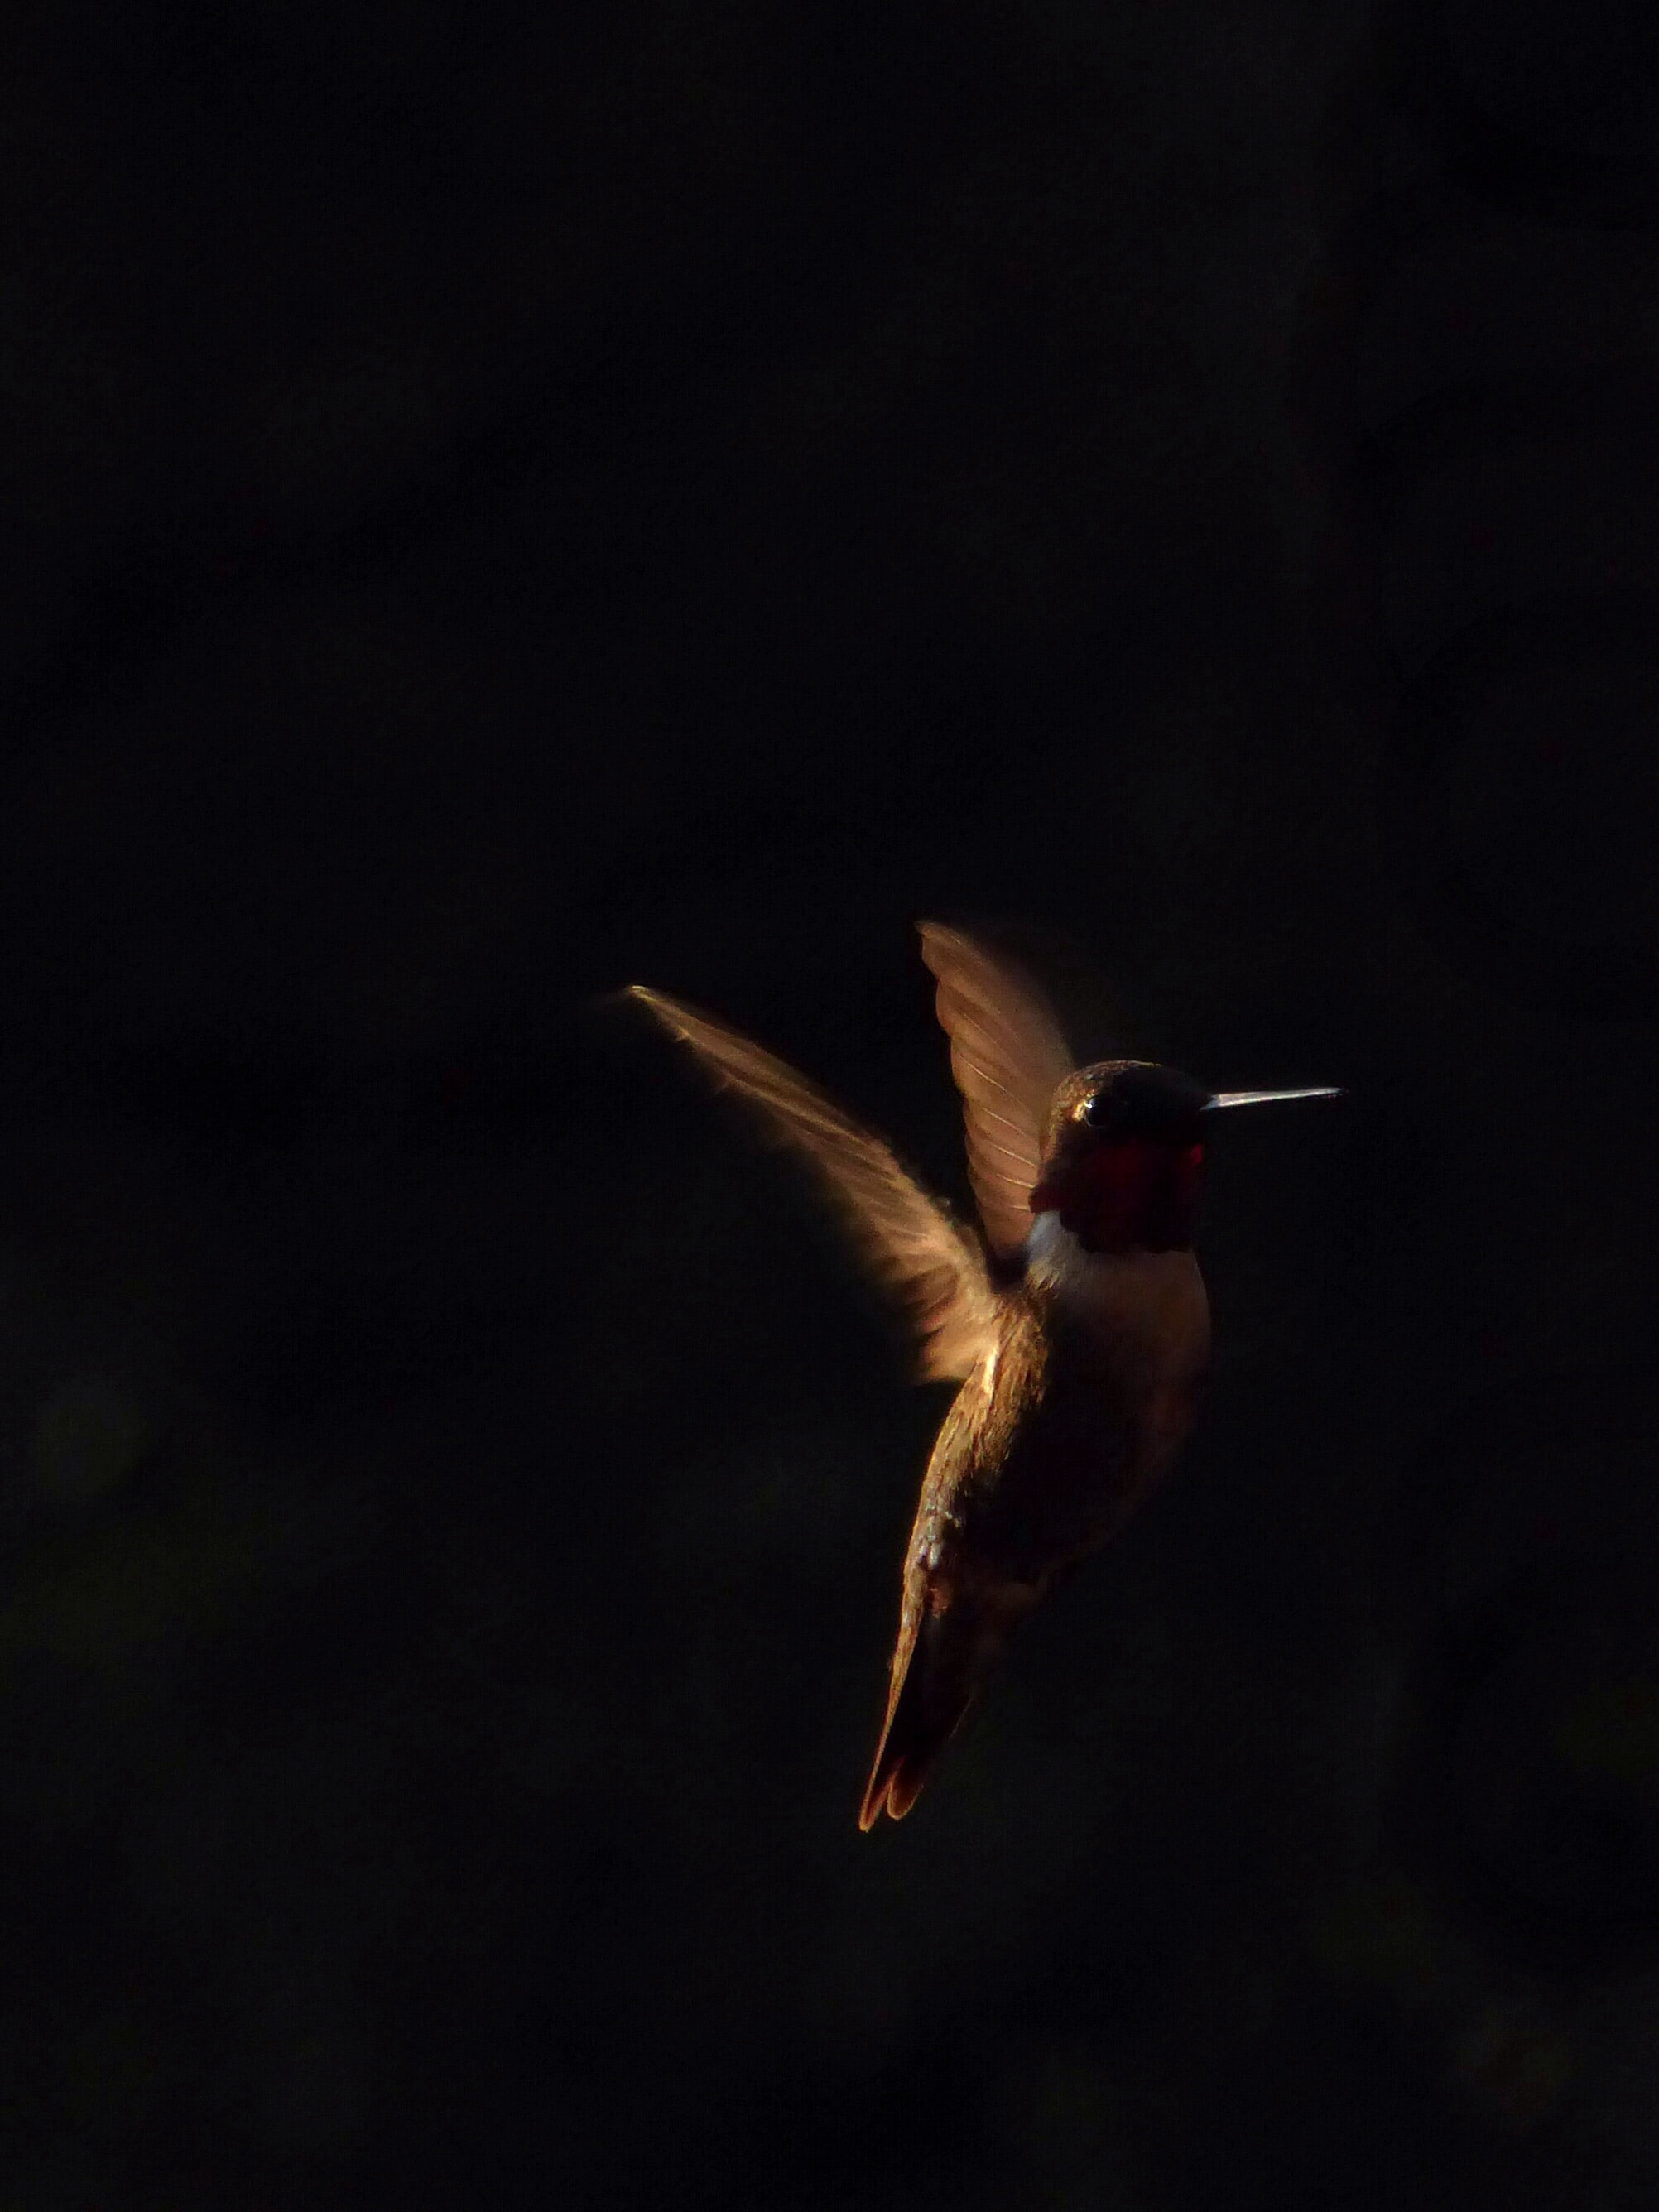 Portrait of a hummingbird in flight against a dark background